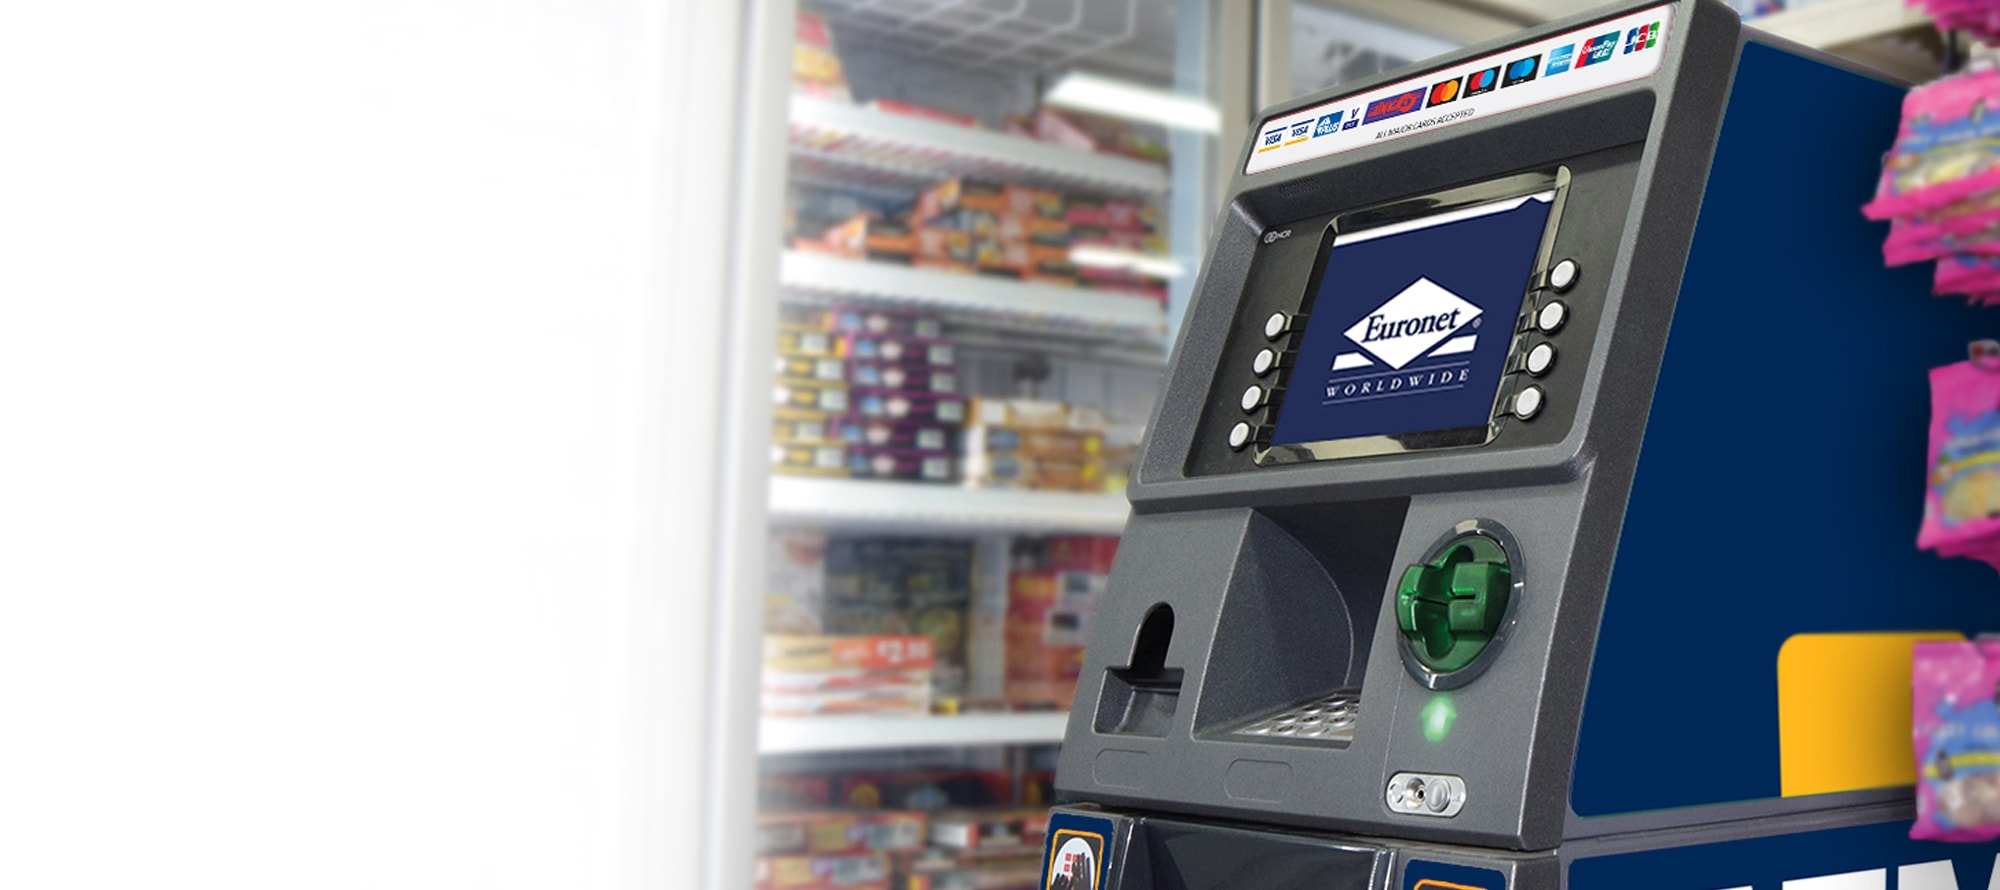 We will manage and maintain the ATM for you, ensuring a high level of service for your customers.